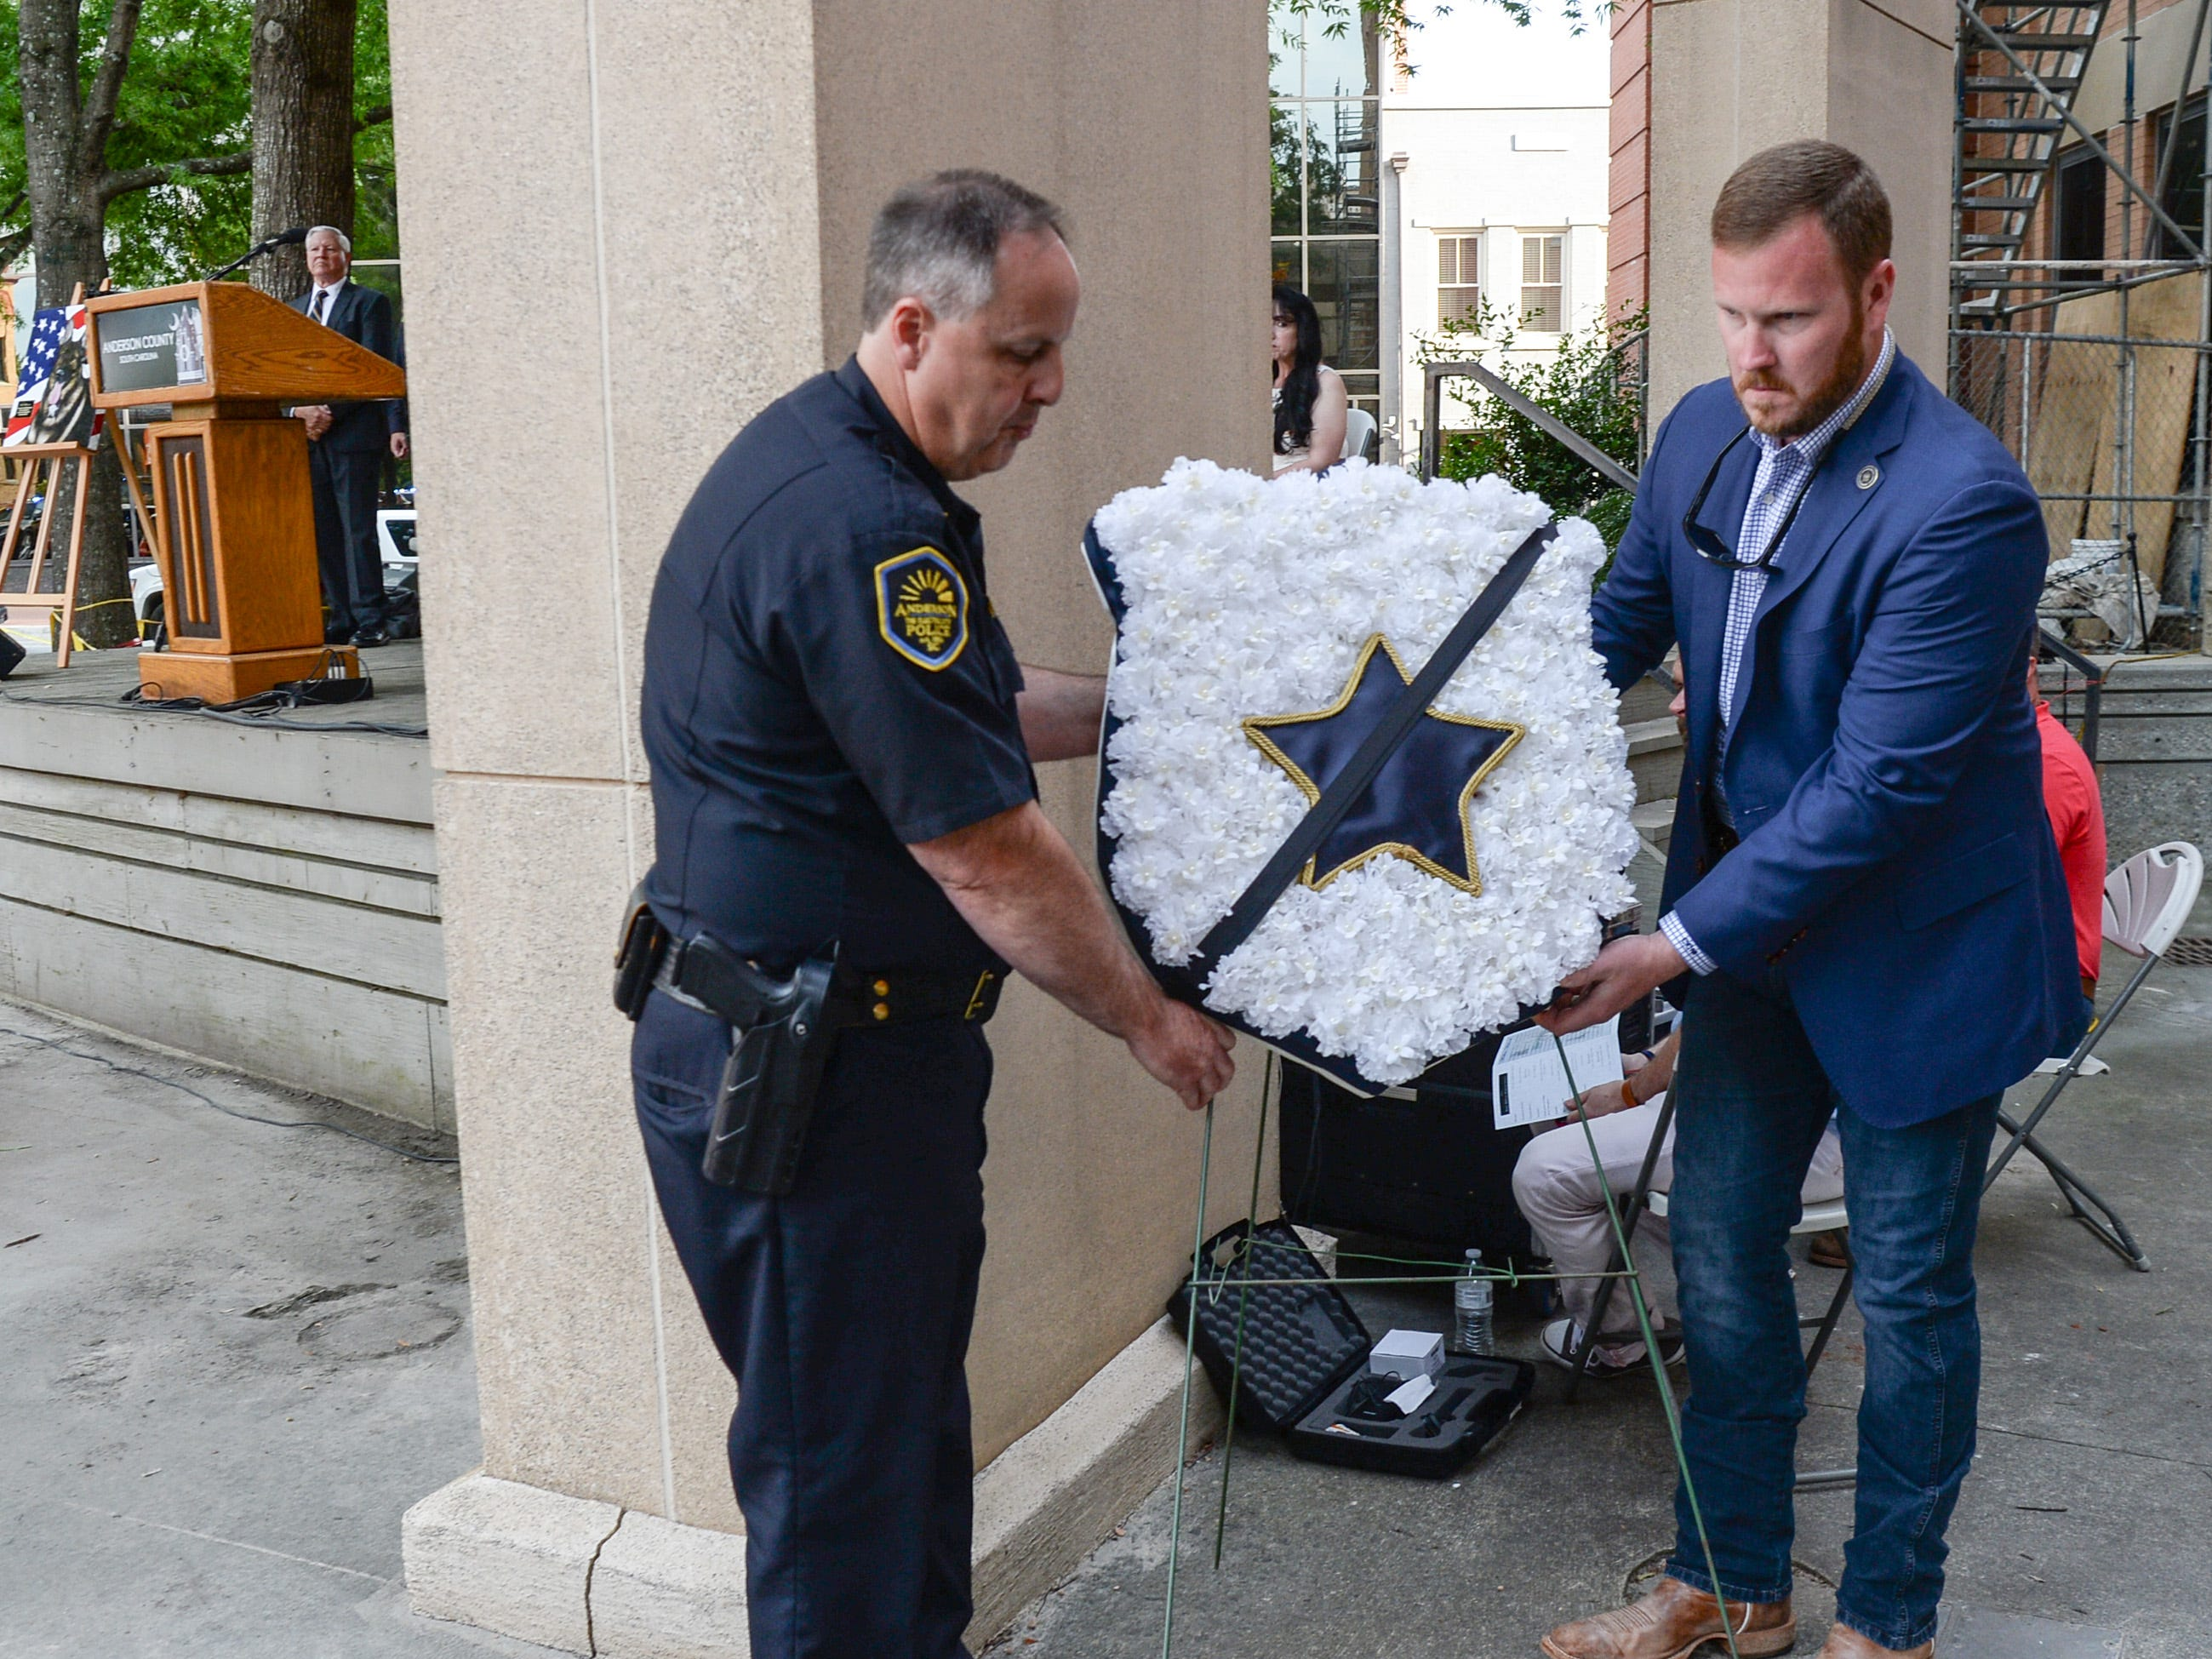 Chief Jim Stewart of the Anderson police department and Sheriff Chad McBride carry a wreath to the courthouse memorial during the 2019 Peace Officer Memorial Service Wednesday May 15, 2019. People attended to help honor the lives of officers lost in the line of duty.